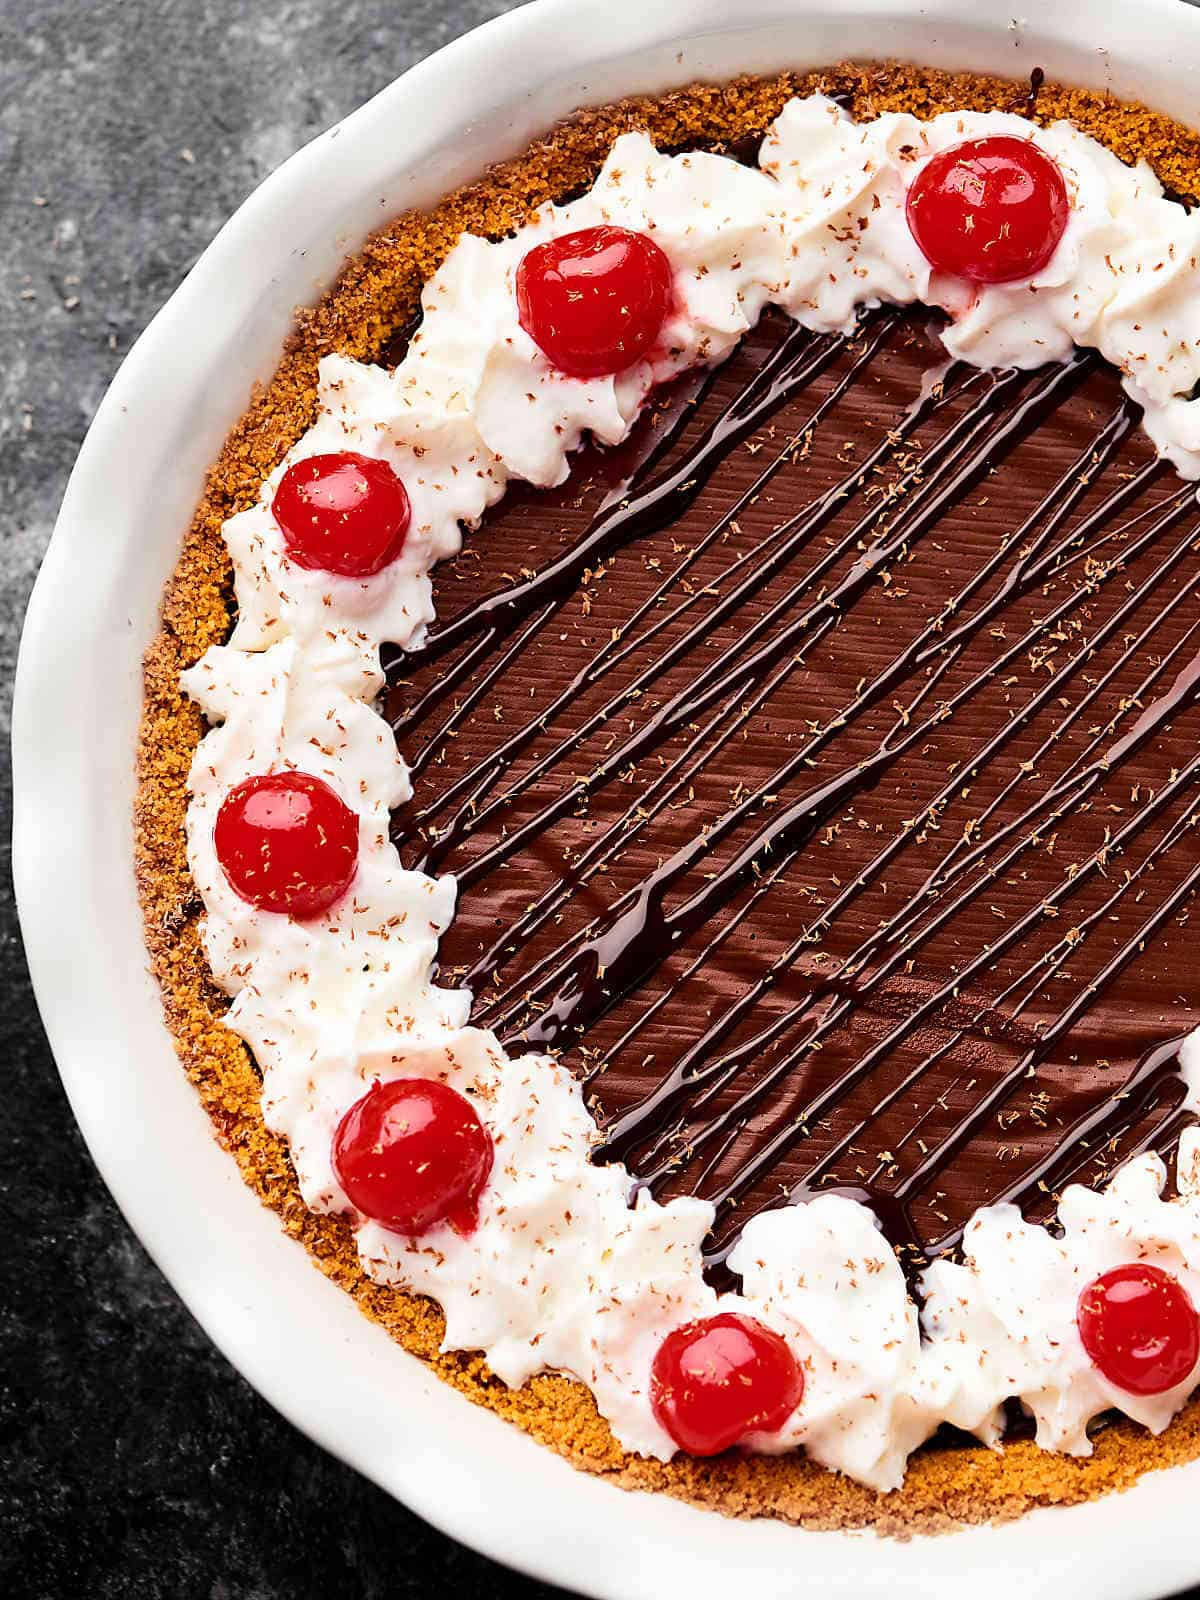 #ad This Red Wine Chocolate Pudding Pie will be the star of your next holiday gathering. A simple graham cracker crust is filled with the most decadent, rich, red wine chocolate pudding! showmetheyummy.com Made in partnership w/ @barefootwine #chocolatepie #puddingpie